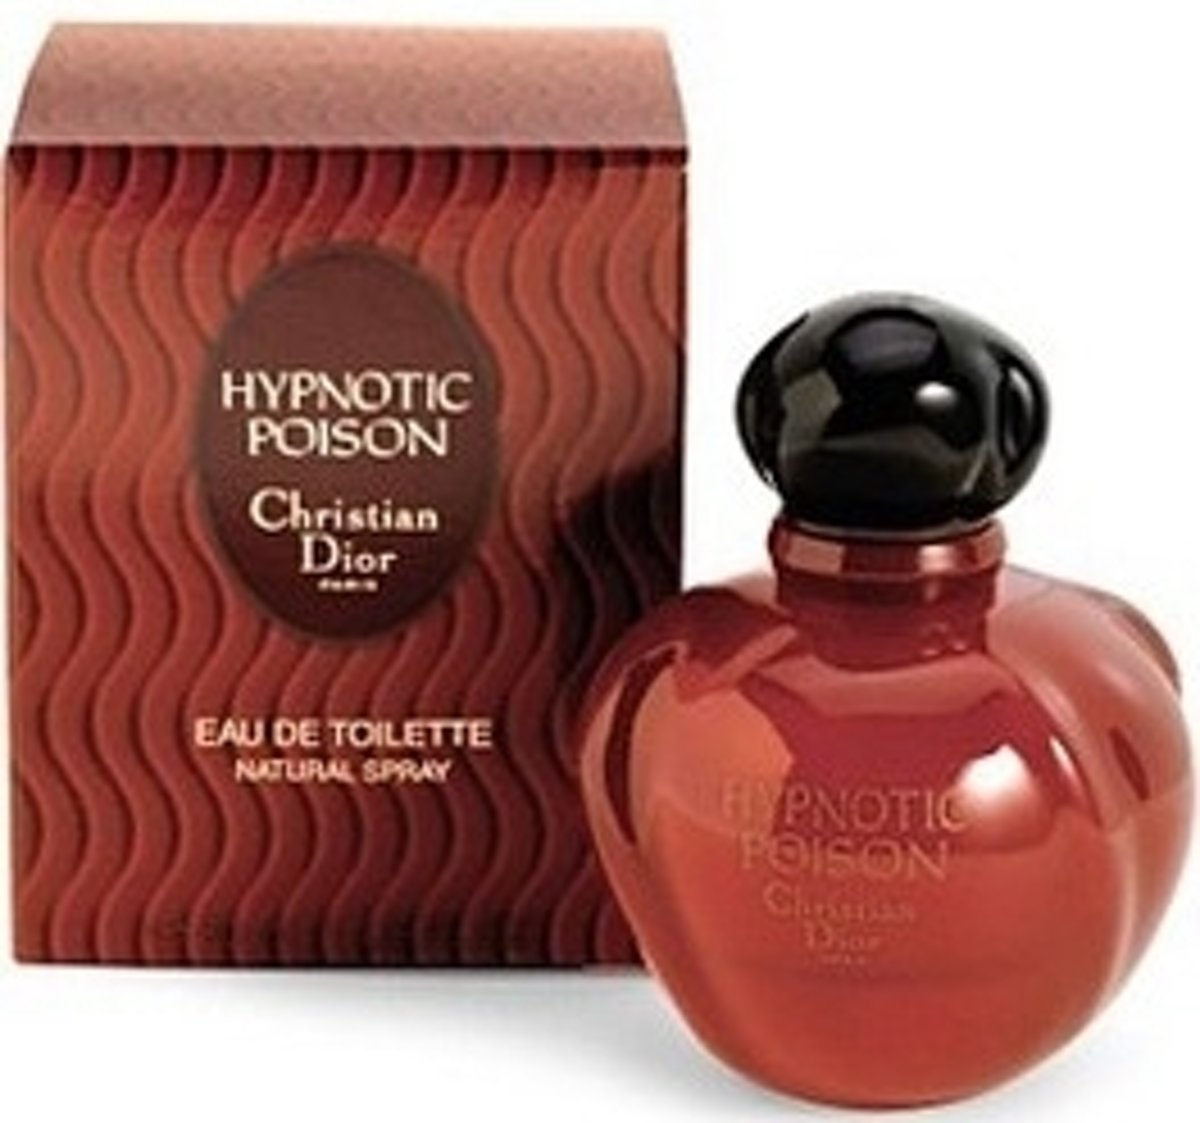 Dior - Eau de toilette - Hypnotic Poison - 150 ml